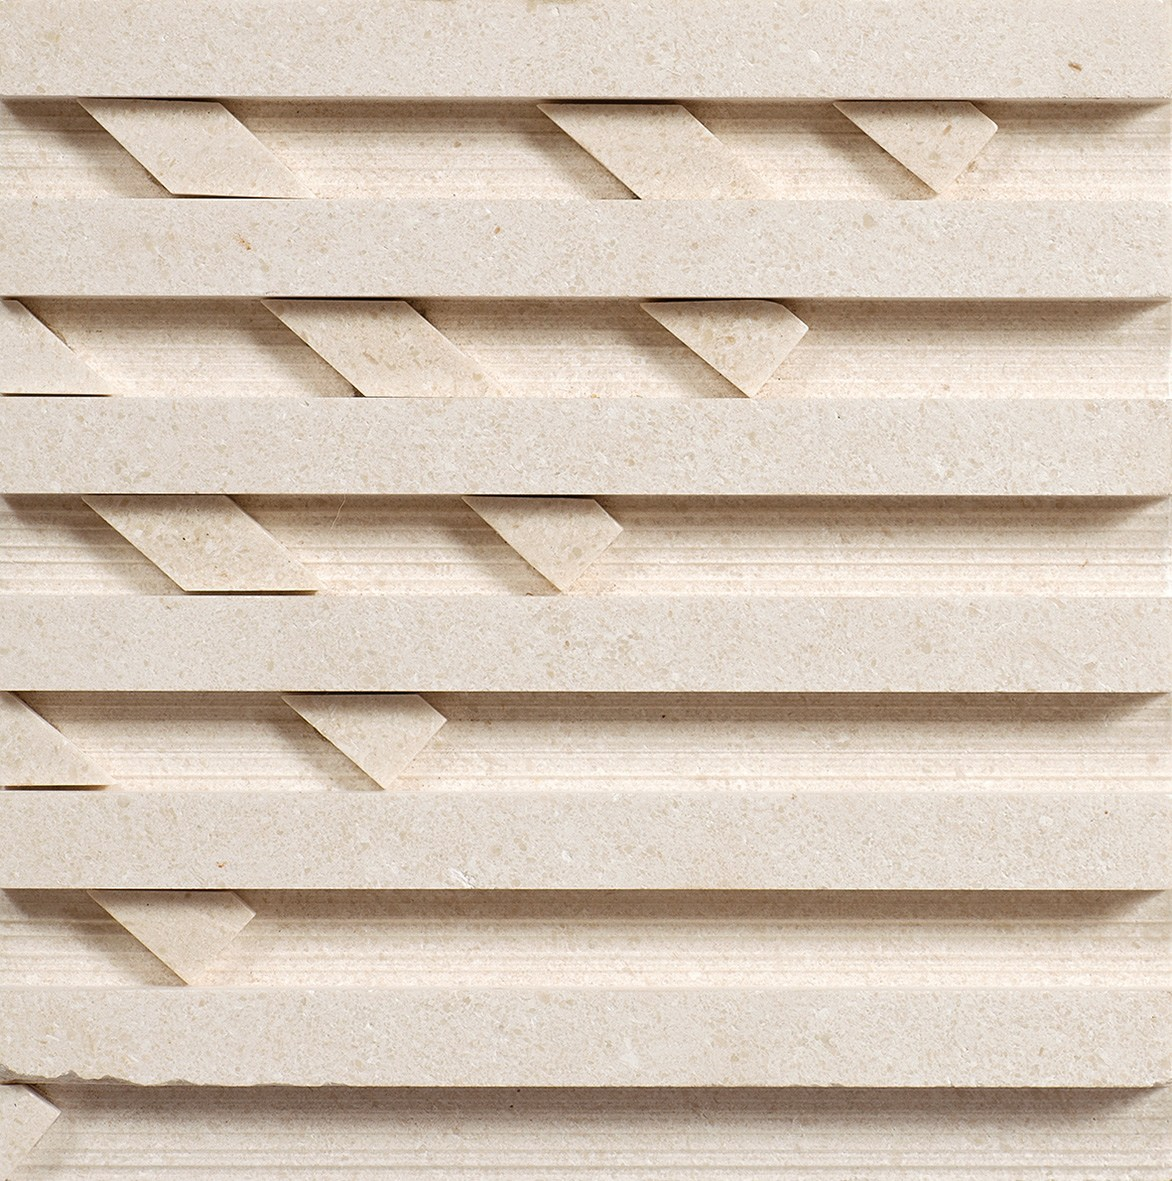 Stone Effect Wall Tiles >> Wall tiles with stone effect ELUSINE by Harmony design Jin